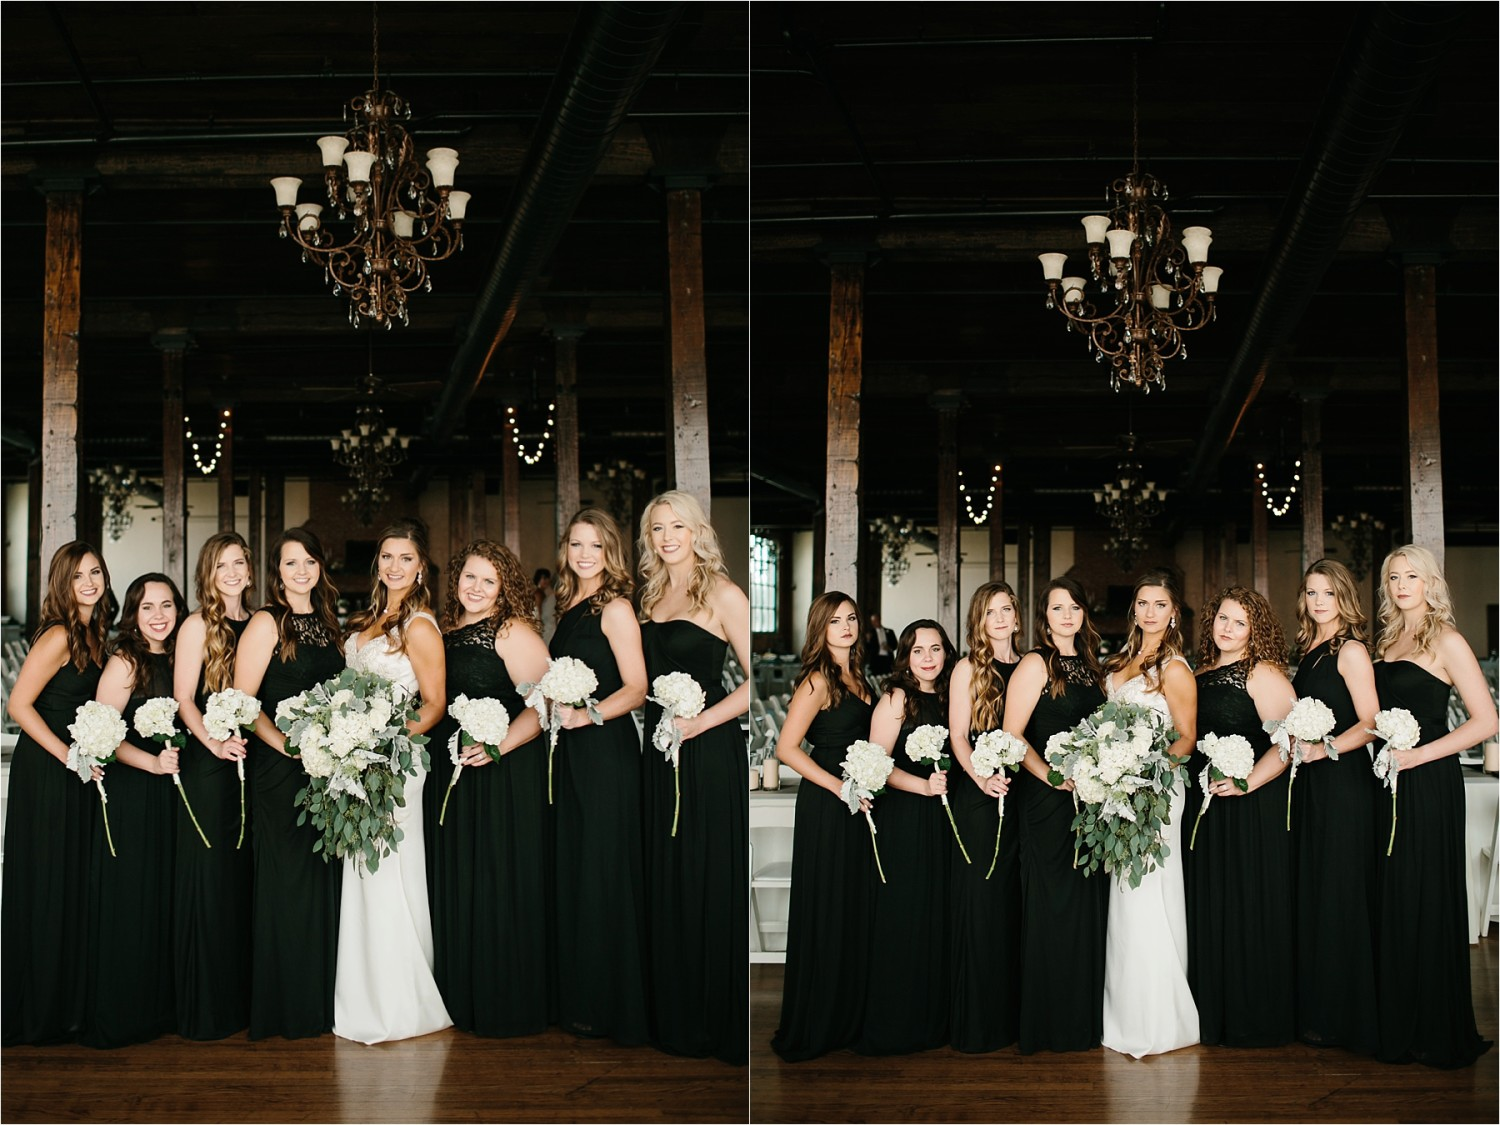 Holly + Jordan __ a black, gold, and greenery organic wedding at The Phoenix Ballroom in Waco, TX by North Texas Wedding Photographer Rachel Meagan Photography __ 45